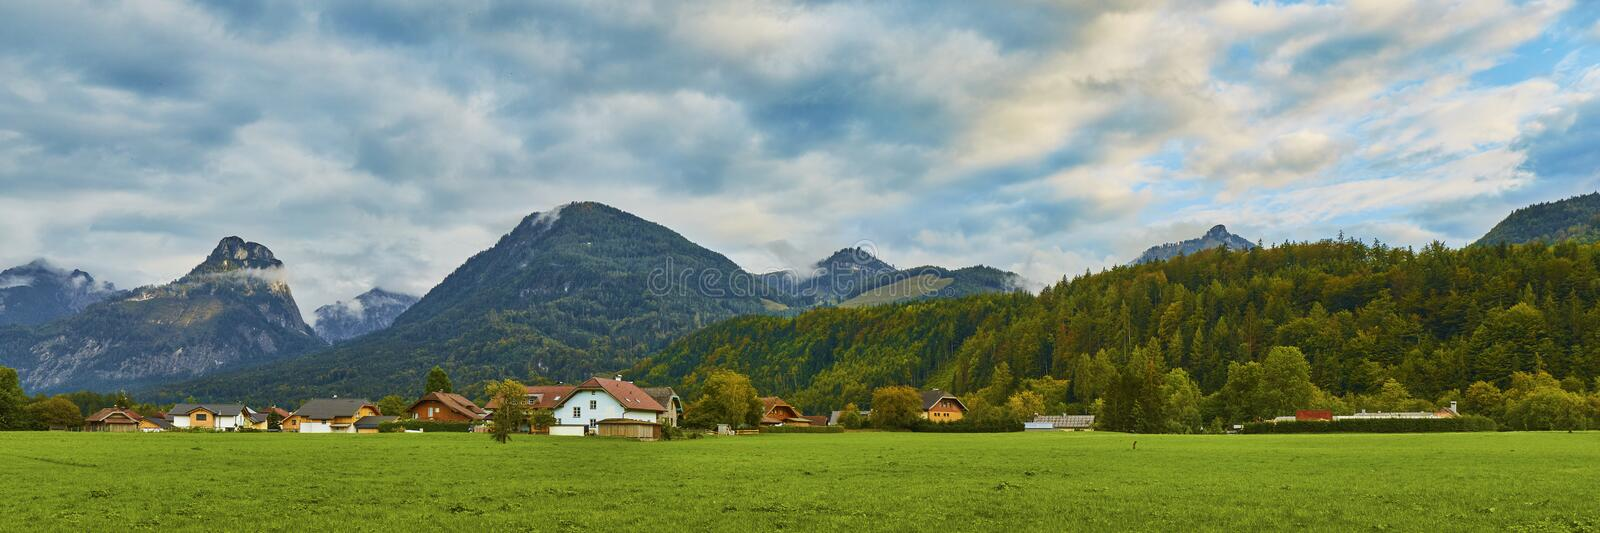 Beautiful panoramic landscape with lush green grass land and Alpine mountains near Wolfgangsee lake in Austria stock photos